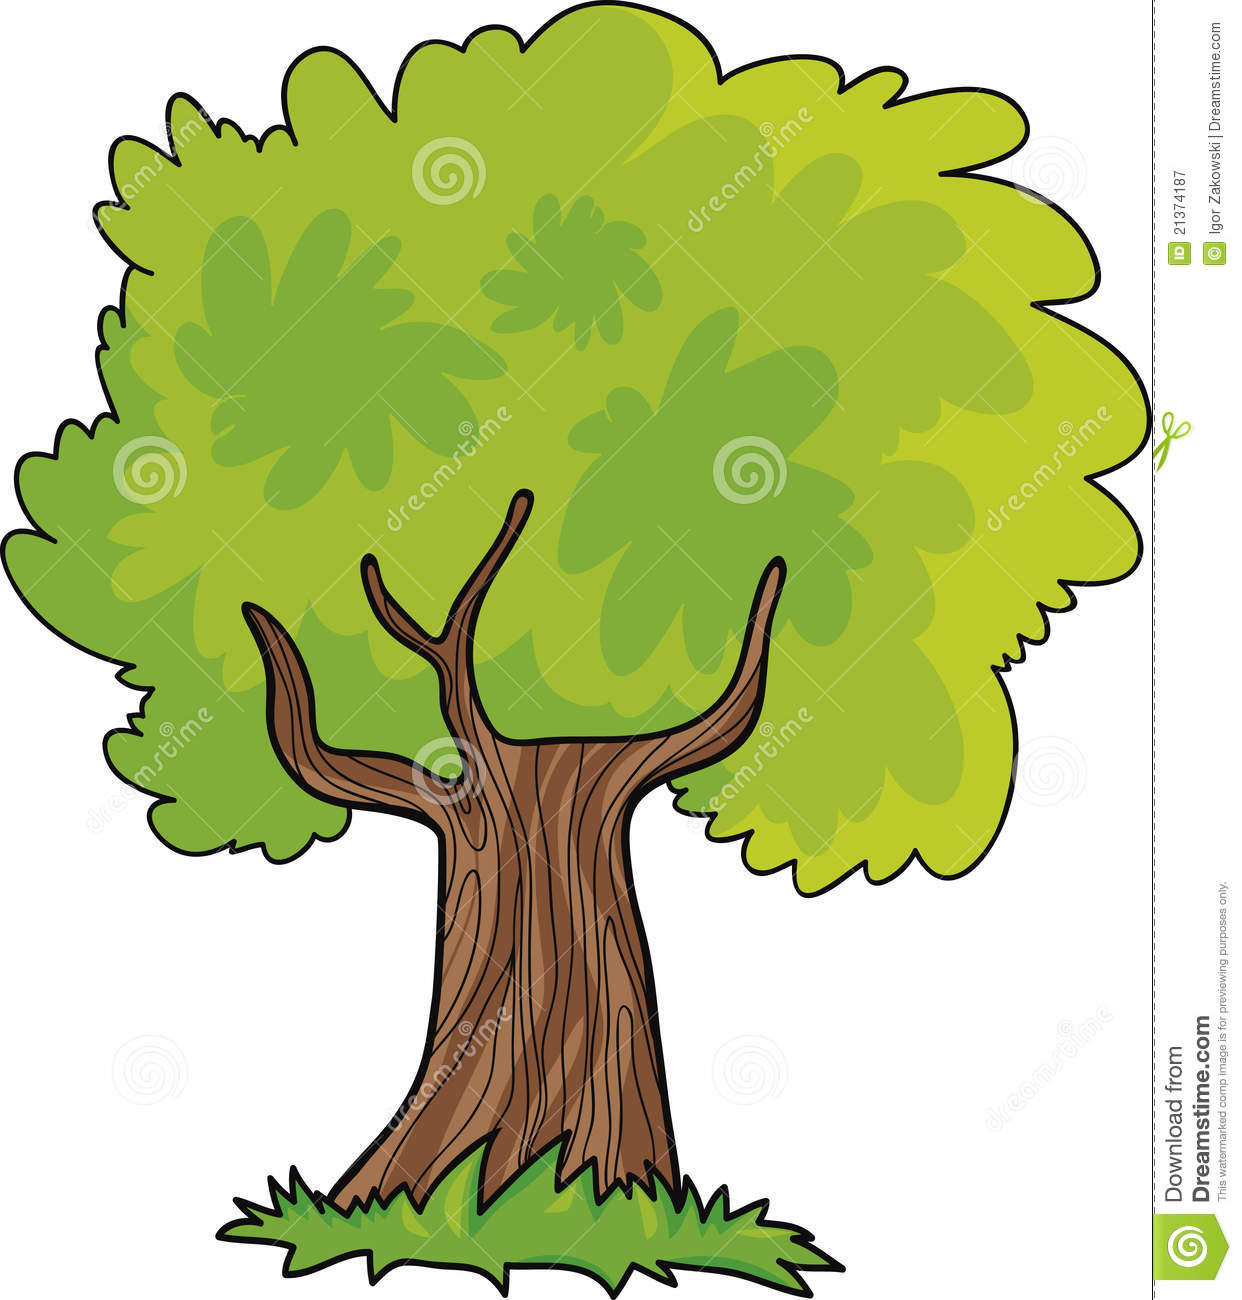 cartoon tree stock vector image of green summer spring 21374187. Black Bedroom Furniture Sets. Home Design Ideas